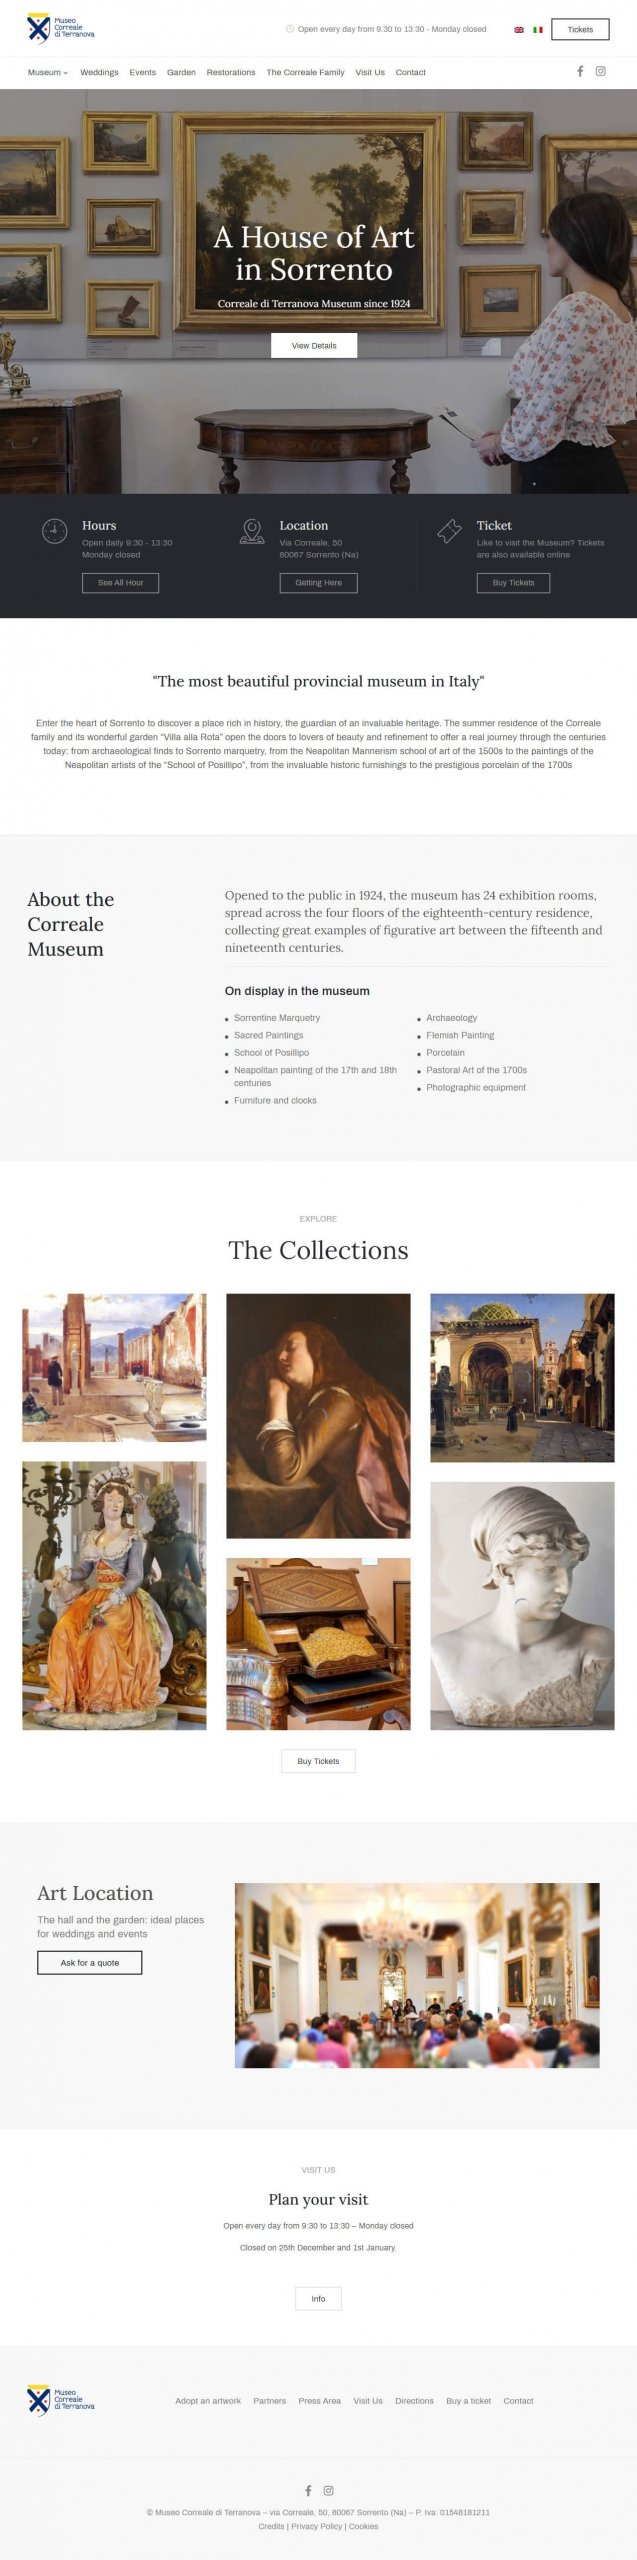 Restyling sito museo Correale Sorrento - home page